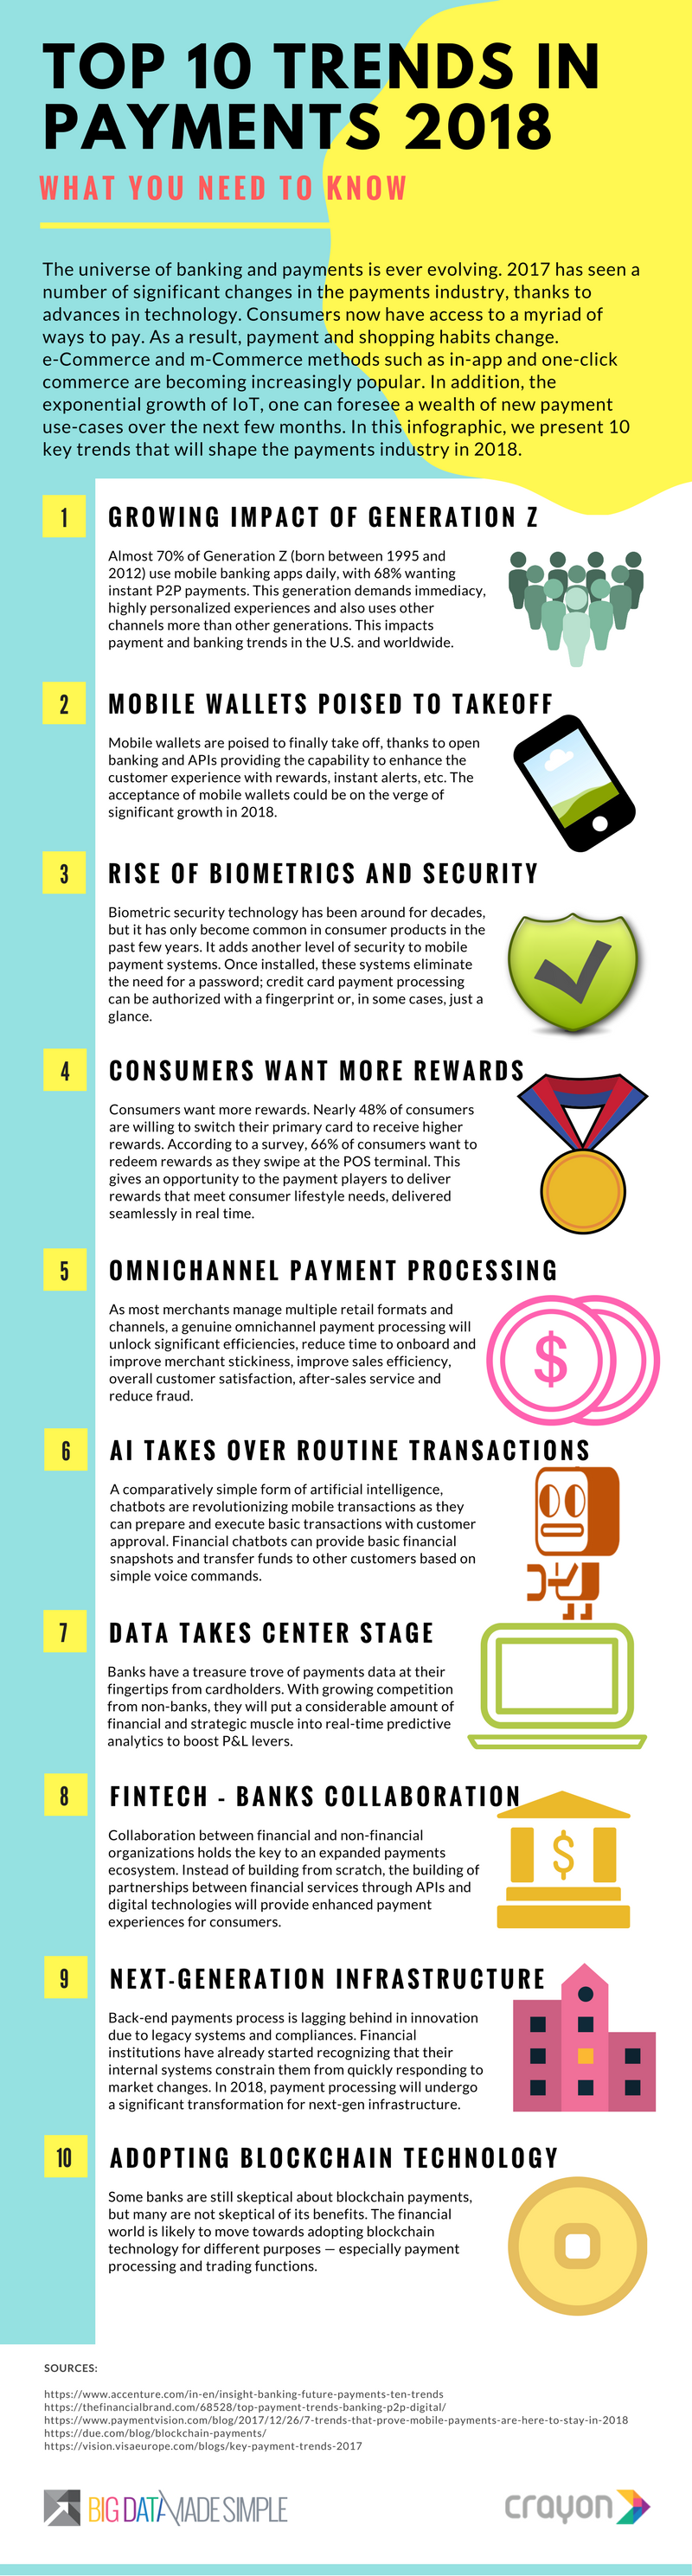 Top 10 trends in payments 2018